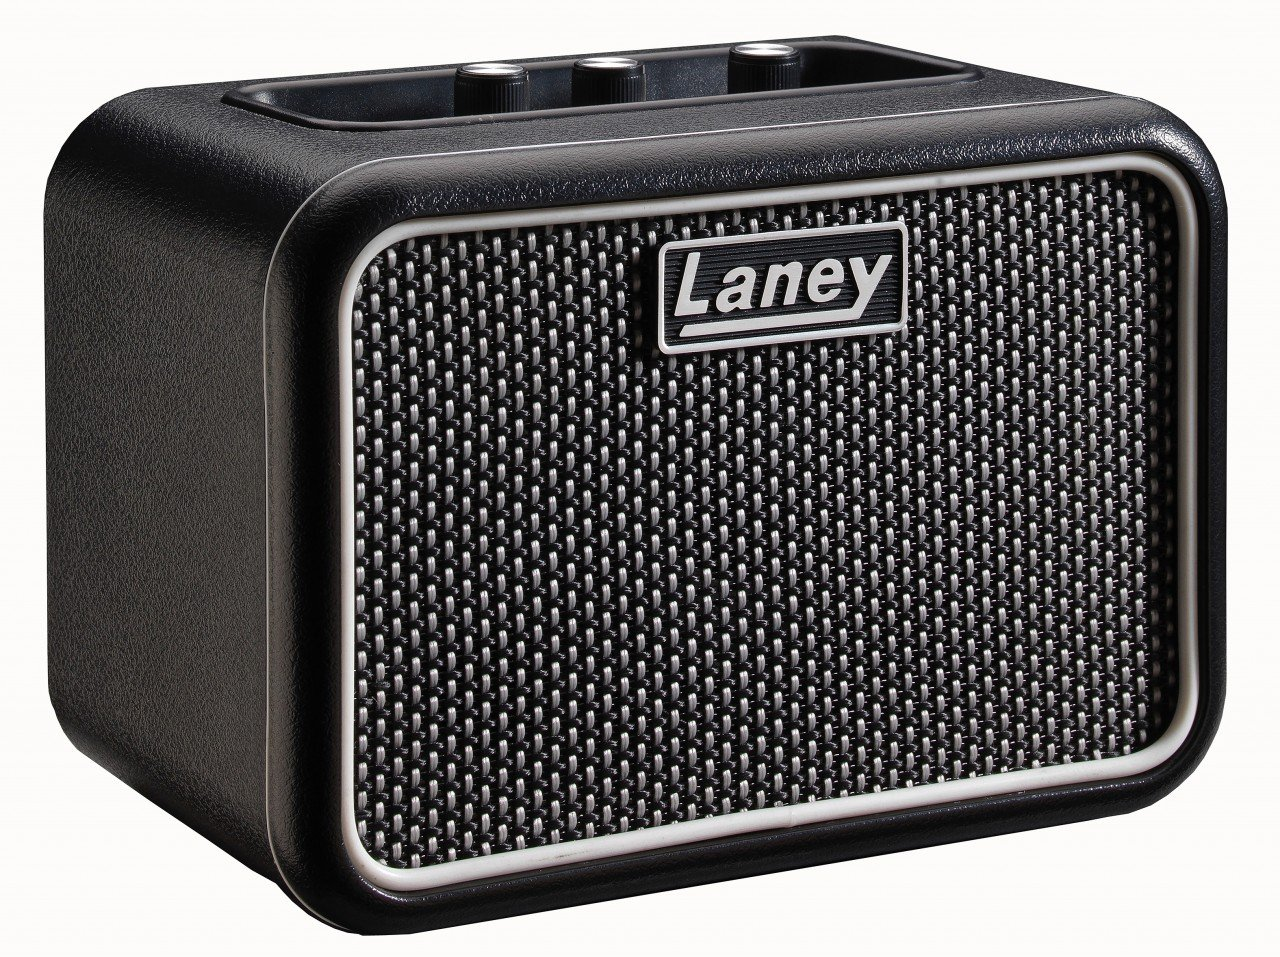 LANEY MINI-SUPERG MINI AMP 2 CH. FEATURING SMARTPHONE INSERT TECHNOLOGY